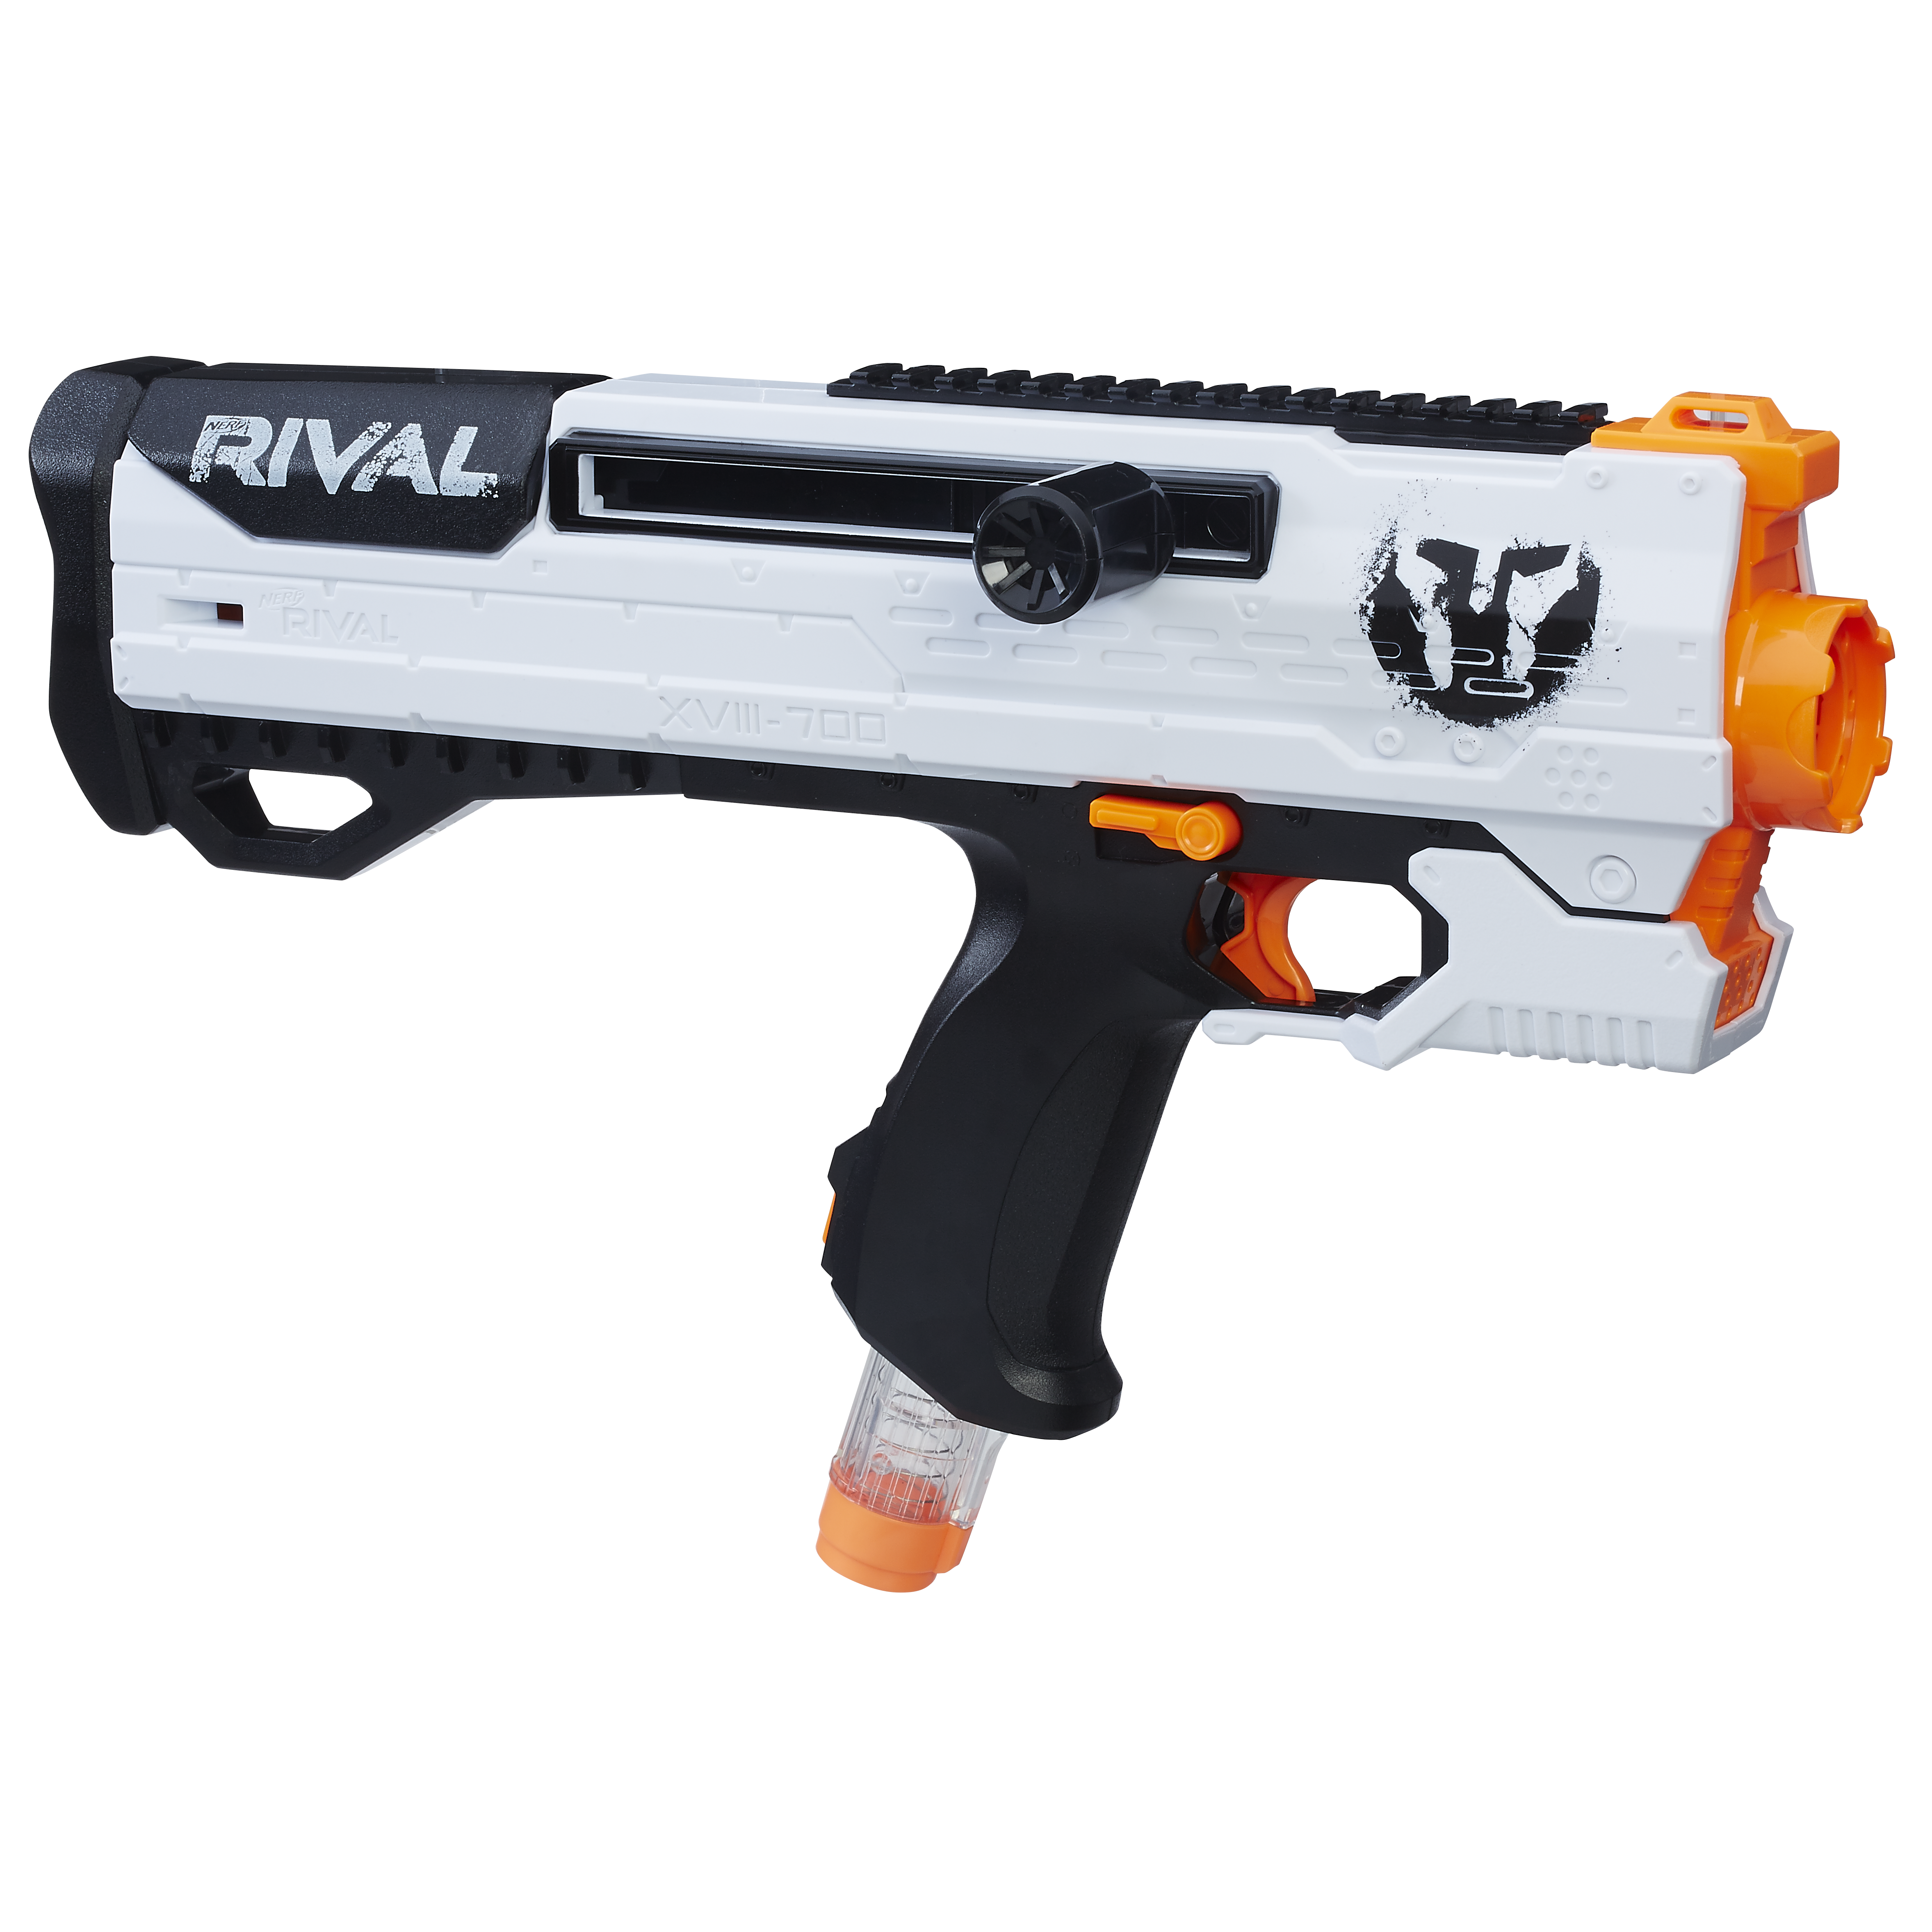 the Phantom Corps Helios is exactly like the Rival Apollo except it features bolt action priming It s believed that the Helios is Nerf s solution to